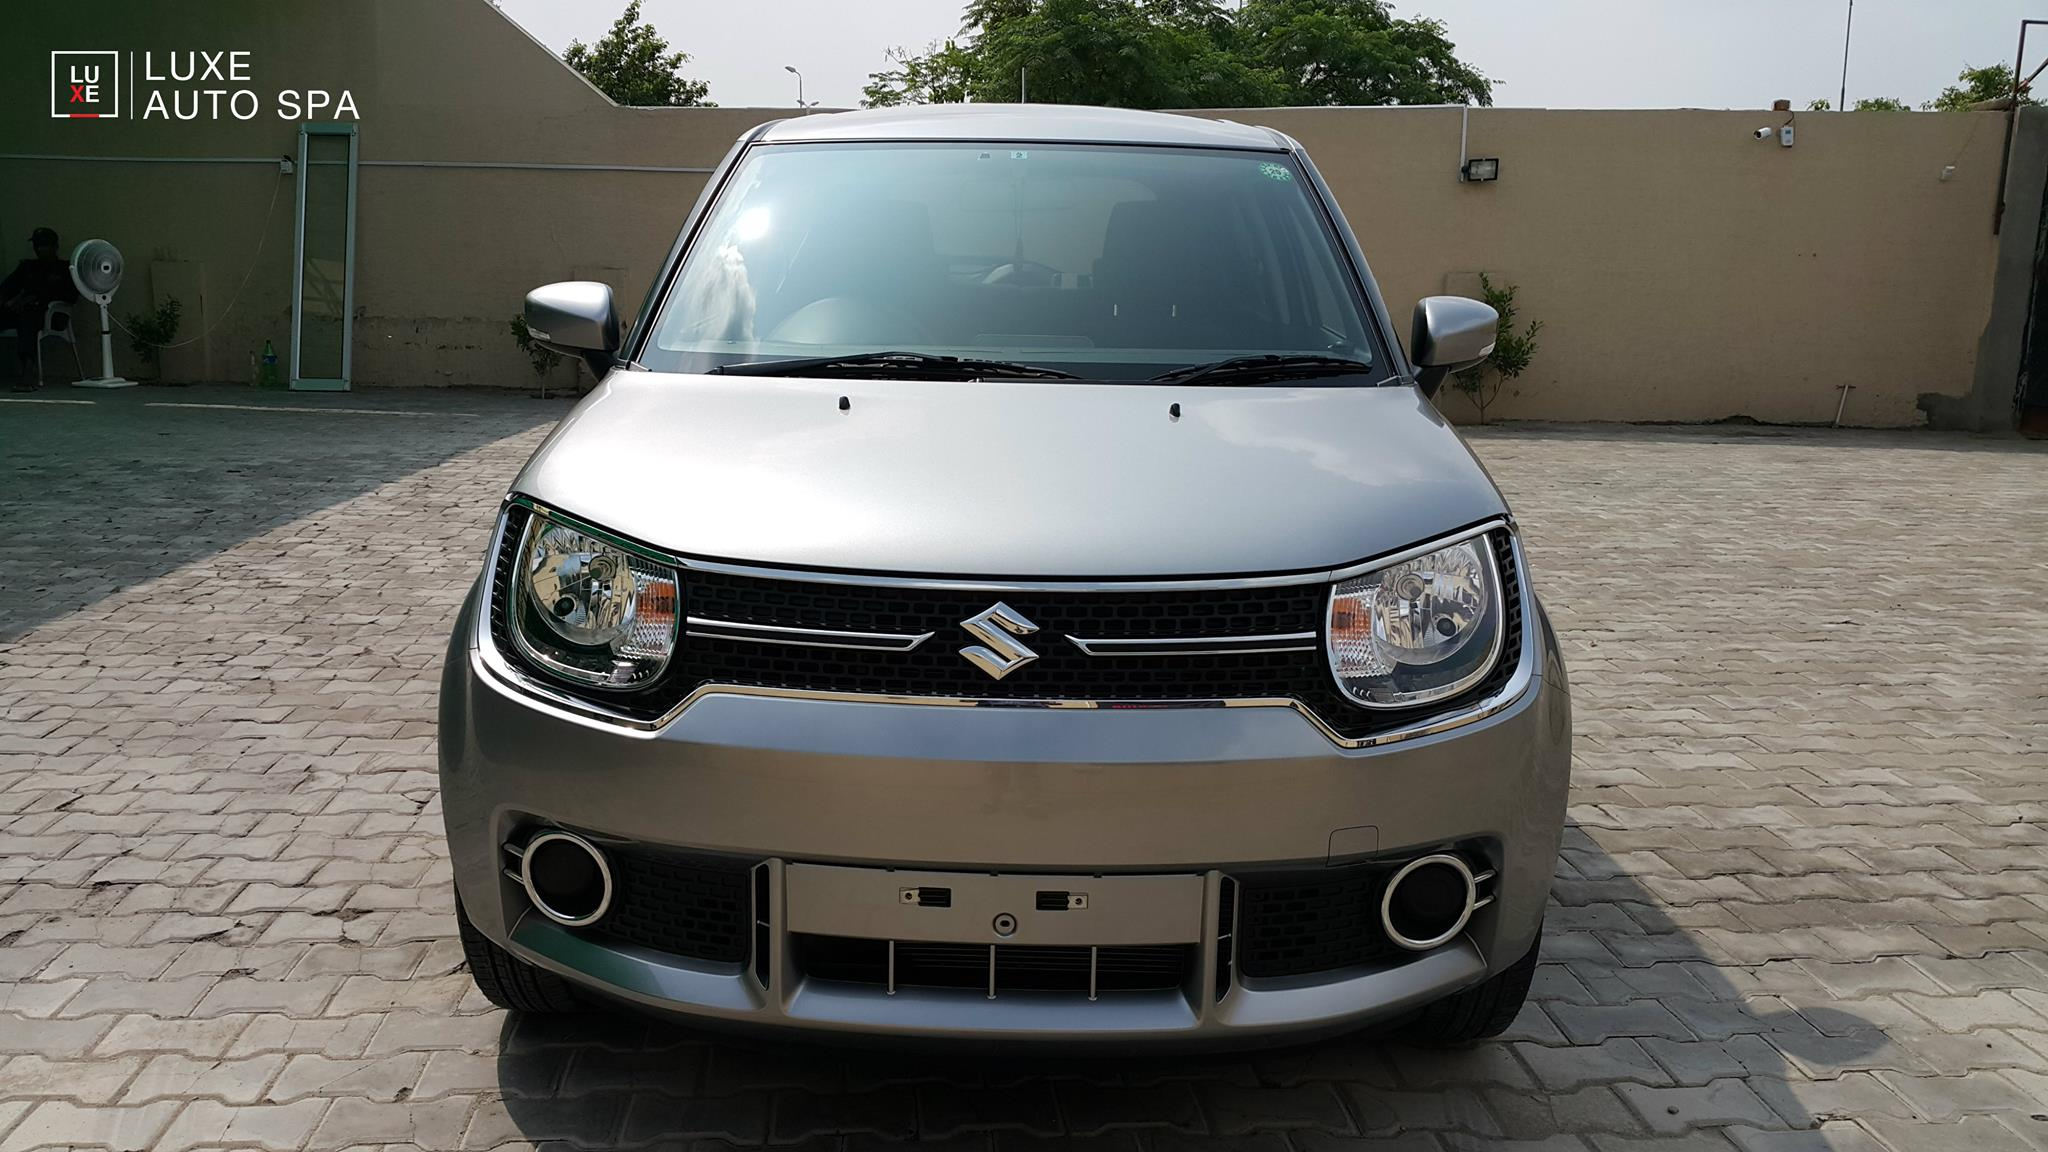 2016 Suzuki Ignis Hybrid Owner S Review Pakwheels Blog